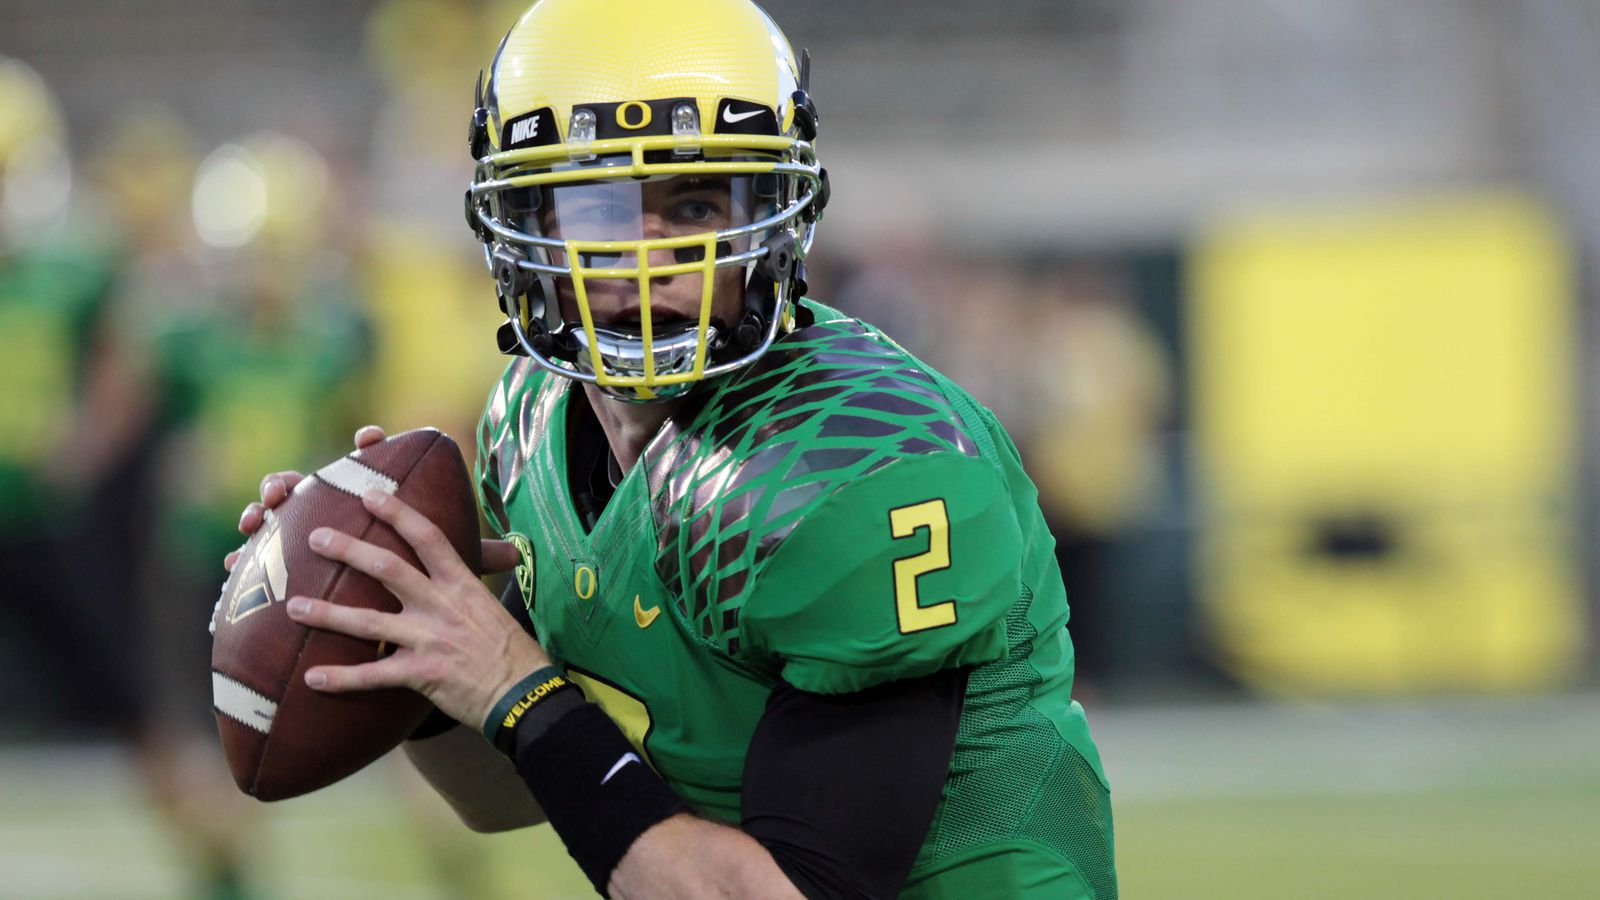 Eagles scouts view Chip Kelly's former Ducks QB as a safety